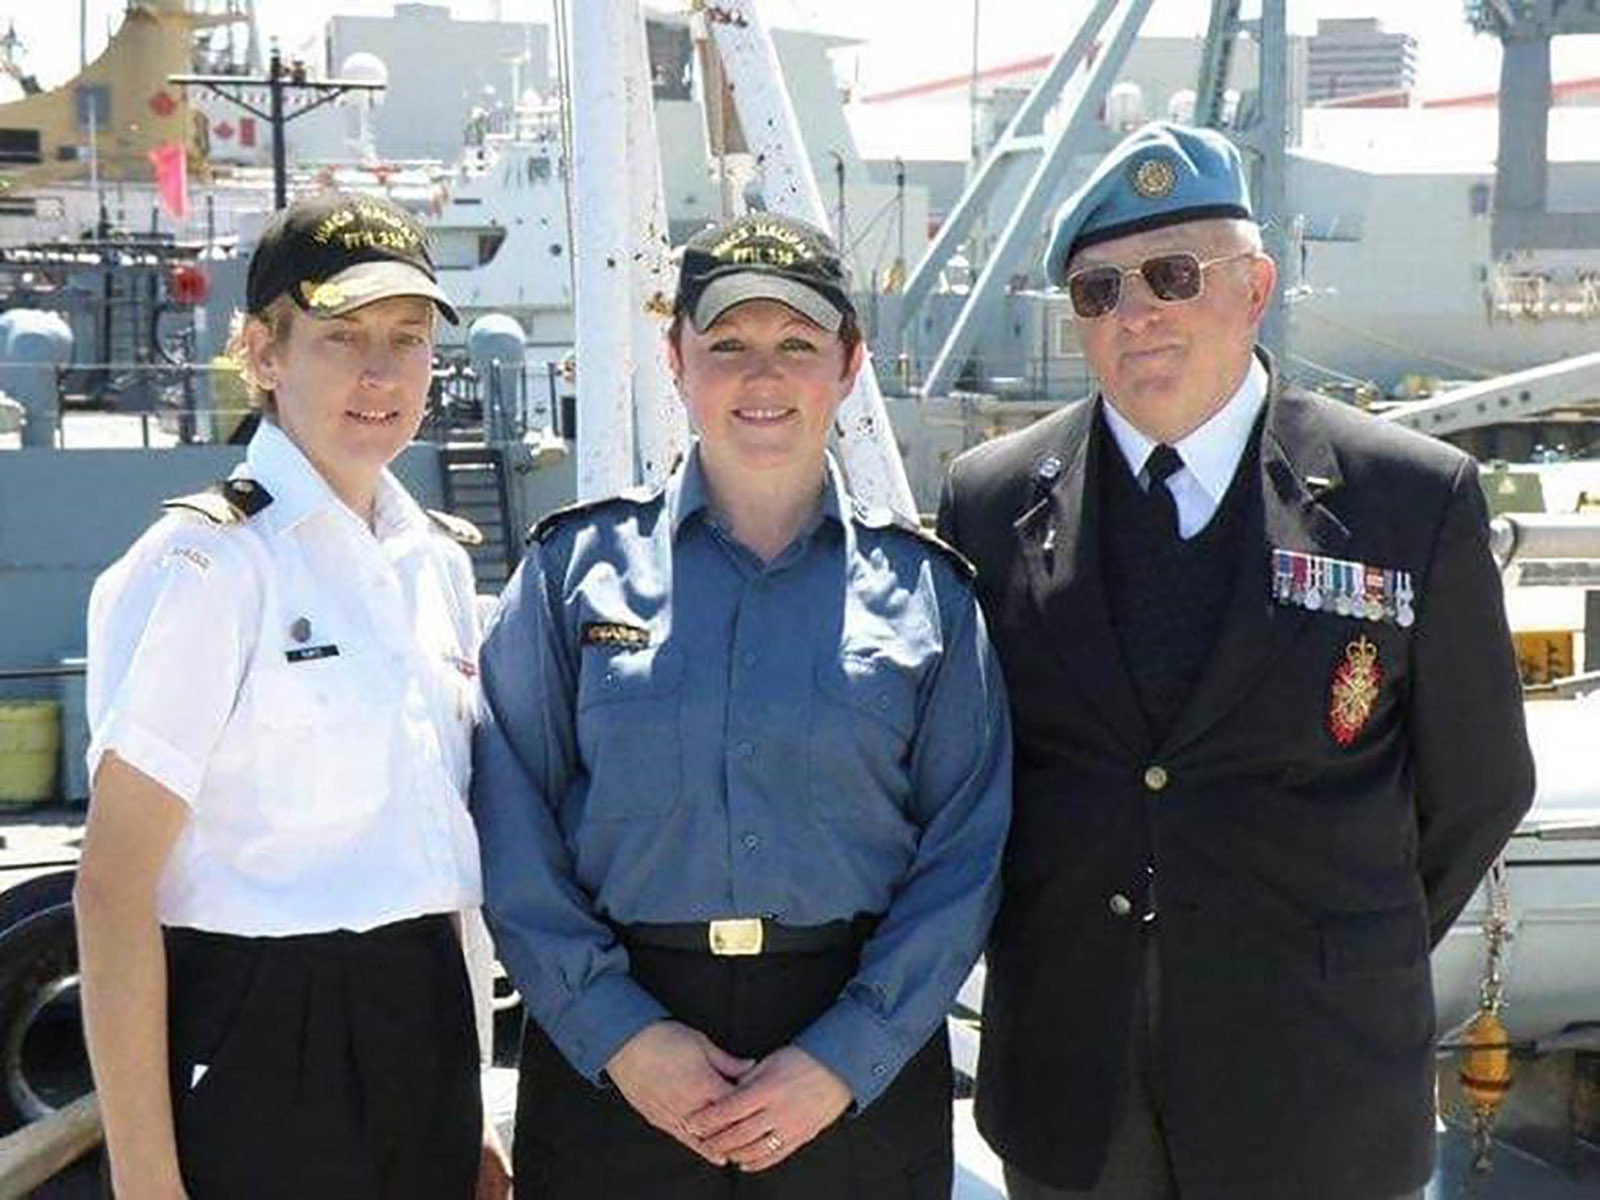 Susana Sears on her promotion day from Master Seaman to Petty Officer 2nd Class. From left: Commodore (then Commander) Josée Kurtz, Petty Officer 2nd Class Susana Sears, and her father, Chief Petty Officer 1st Class (Retired) John McIntosh.